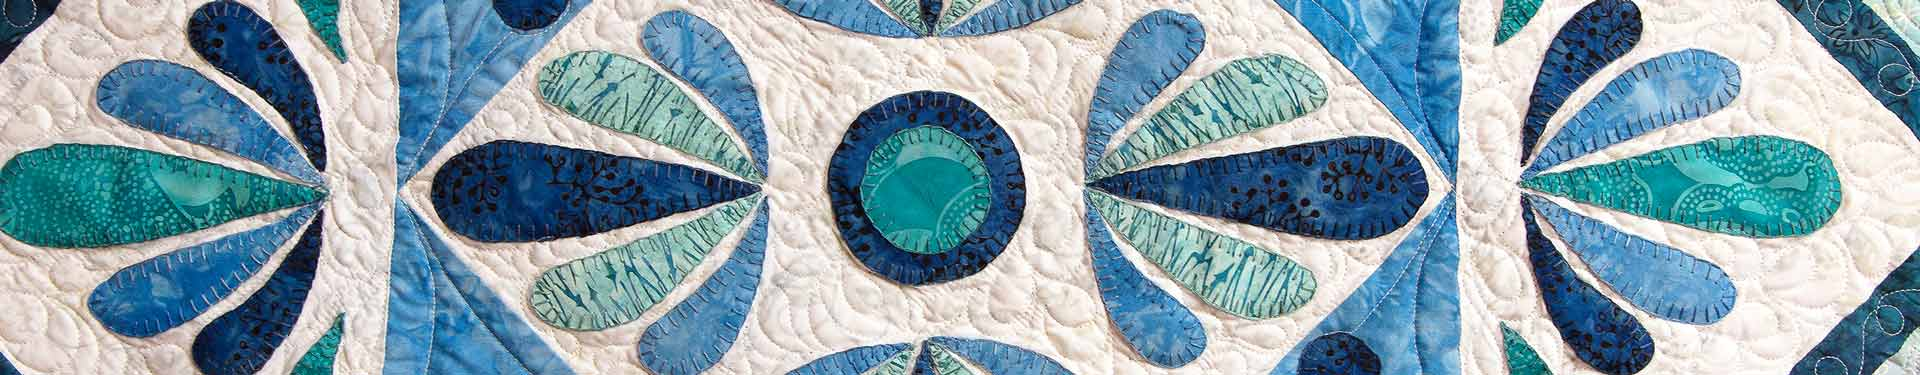 QUILTsocial Banner Image